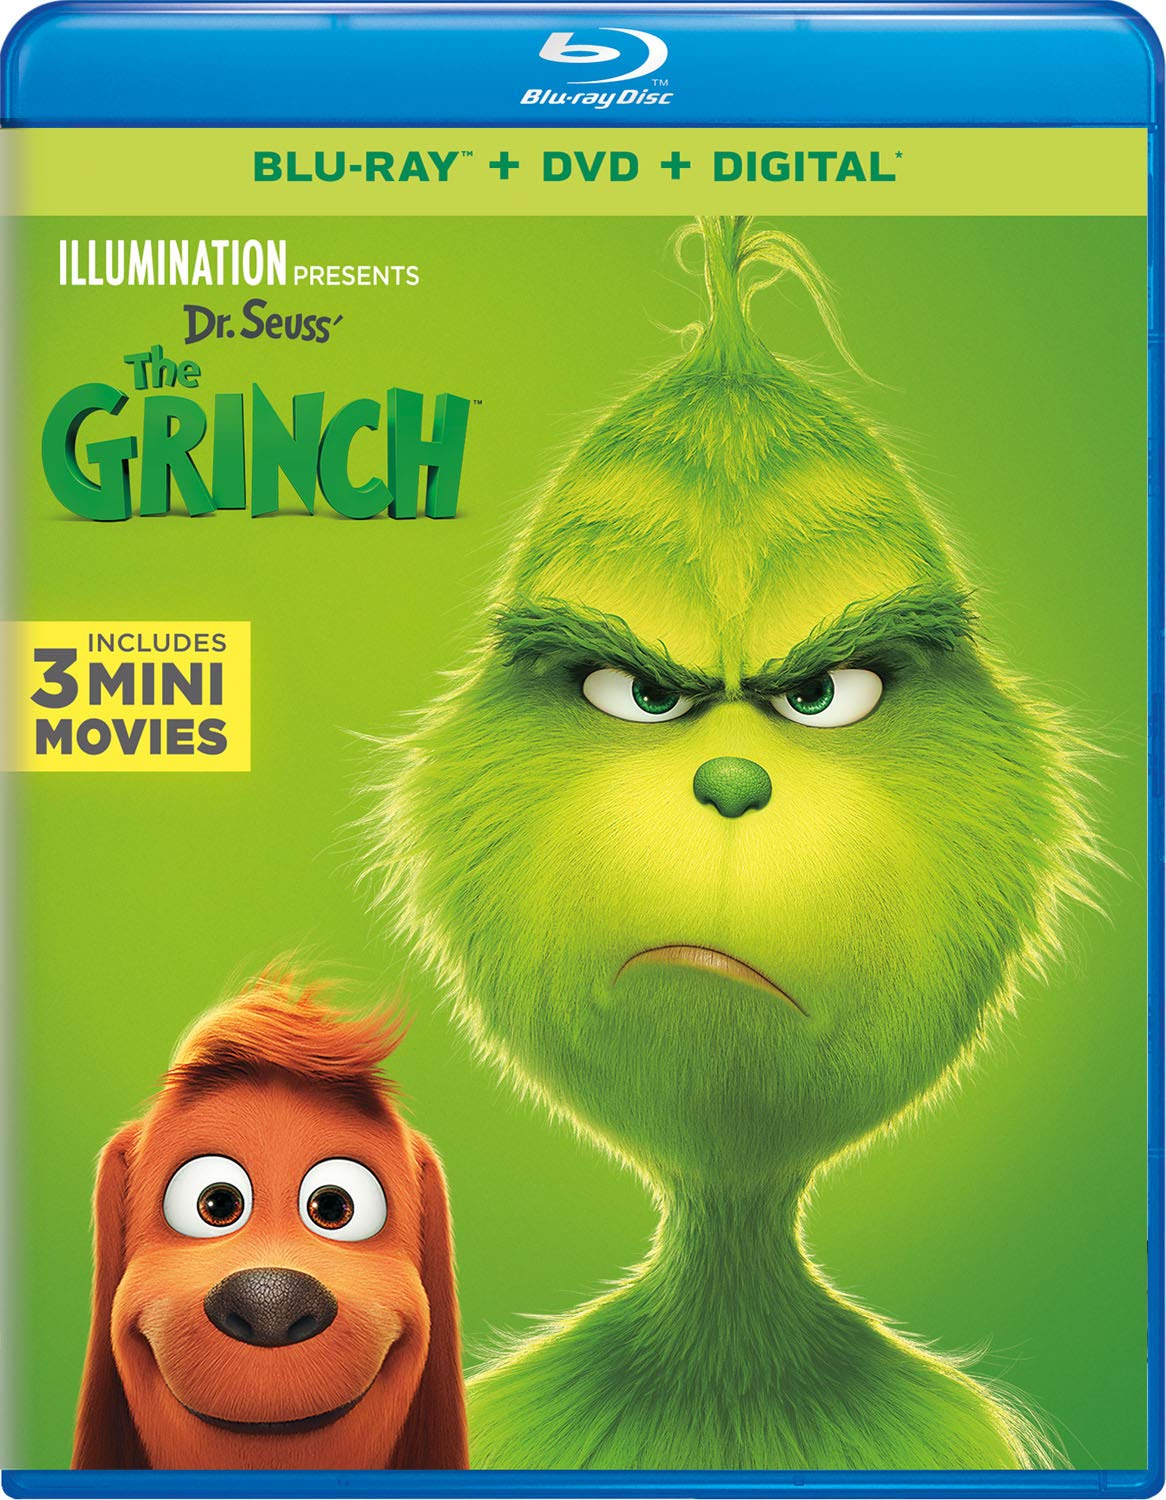 Download The Grinch 2018 2160p HDR 5 1 x265 10bit-PhunPsyz